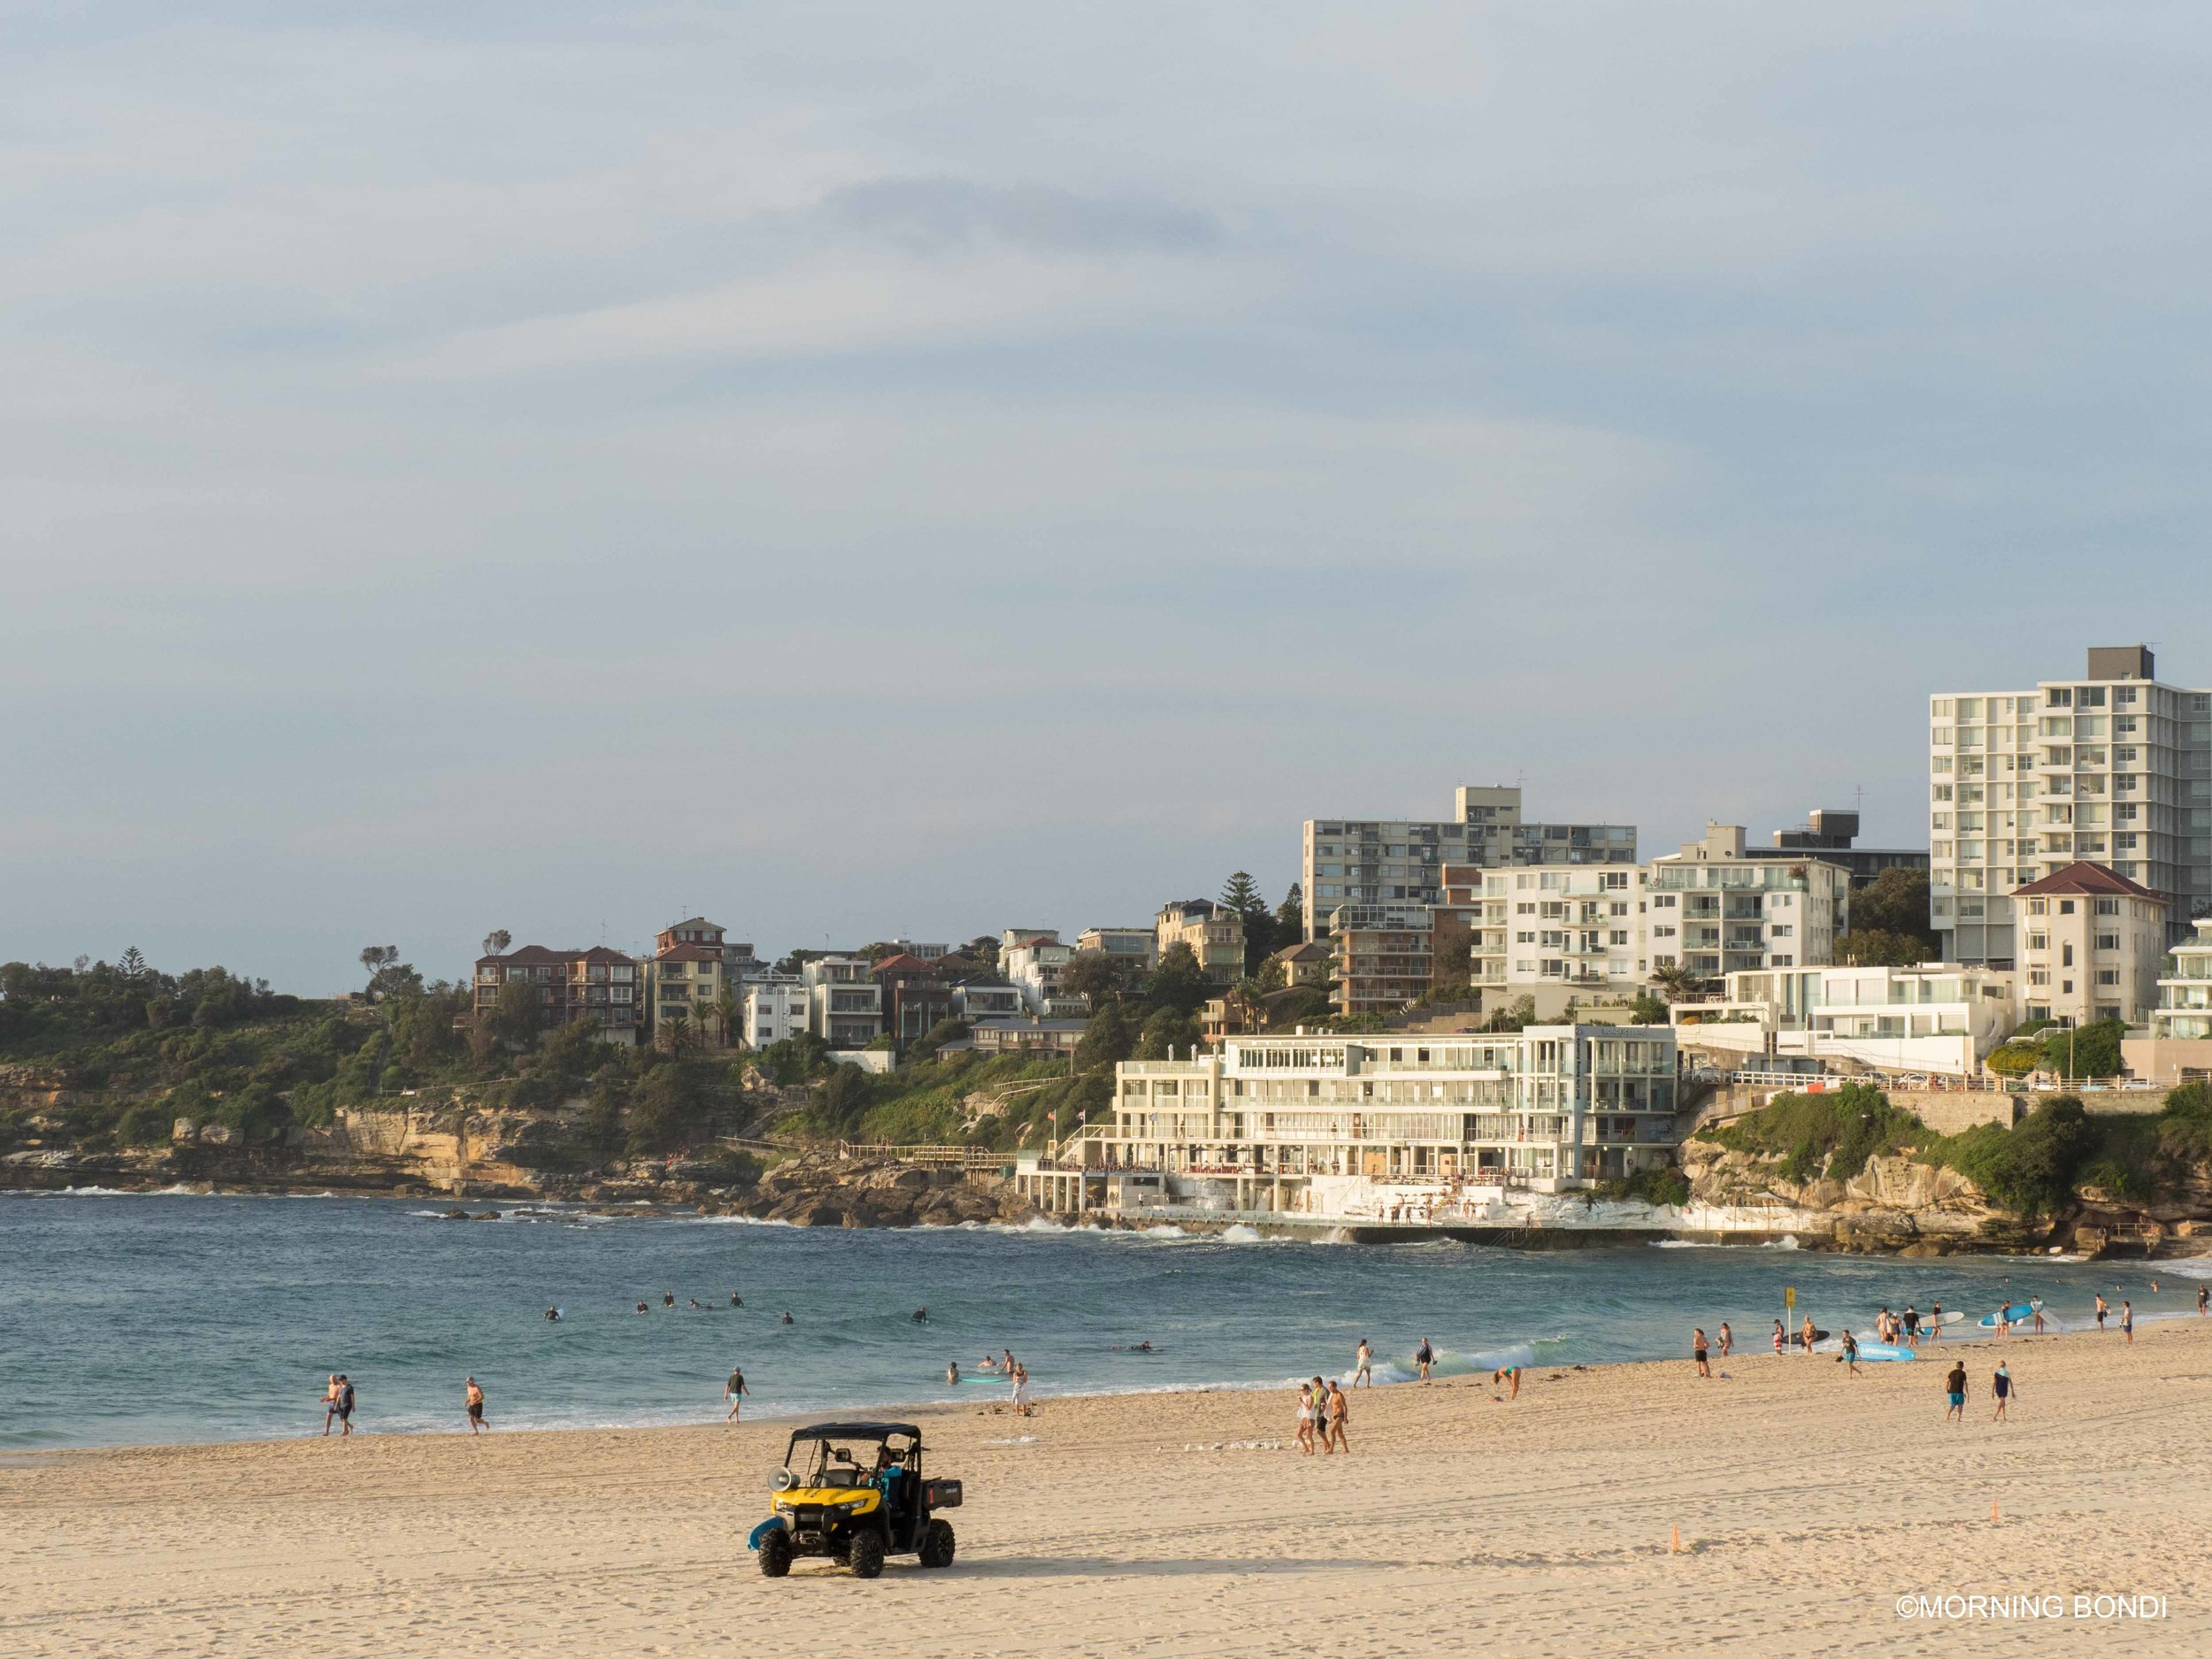 Postcard from Bondi Beach